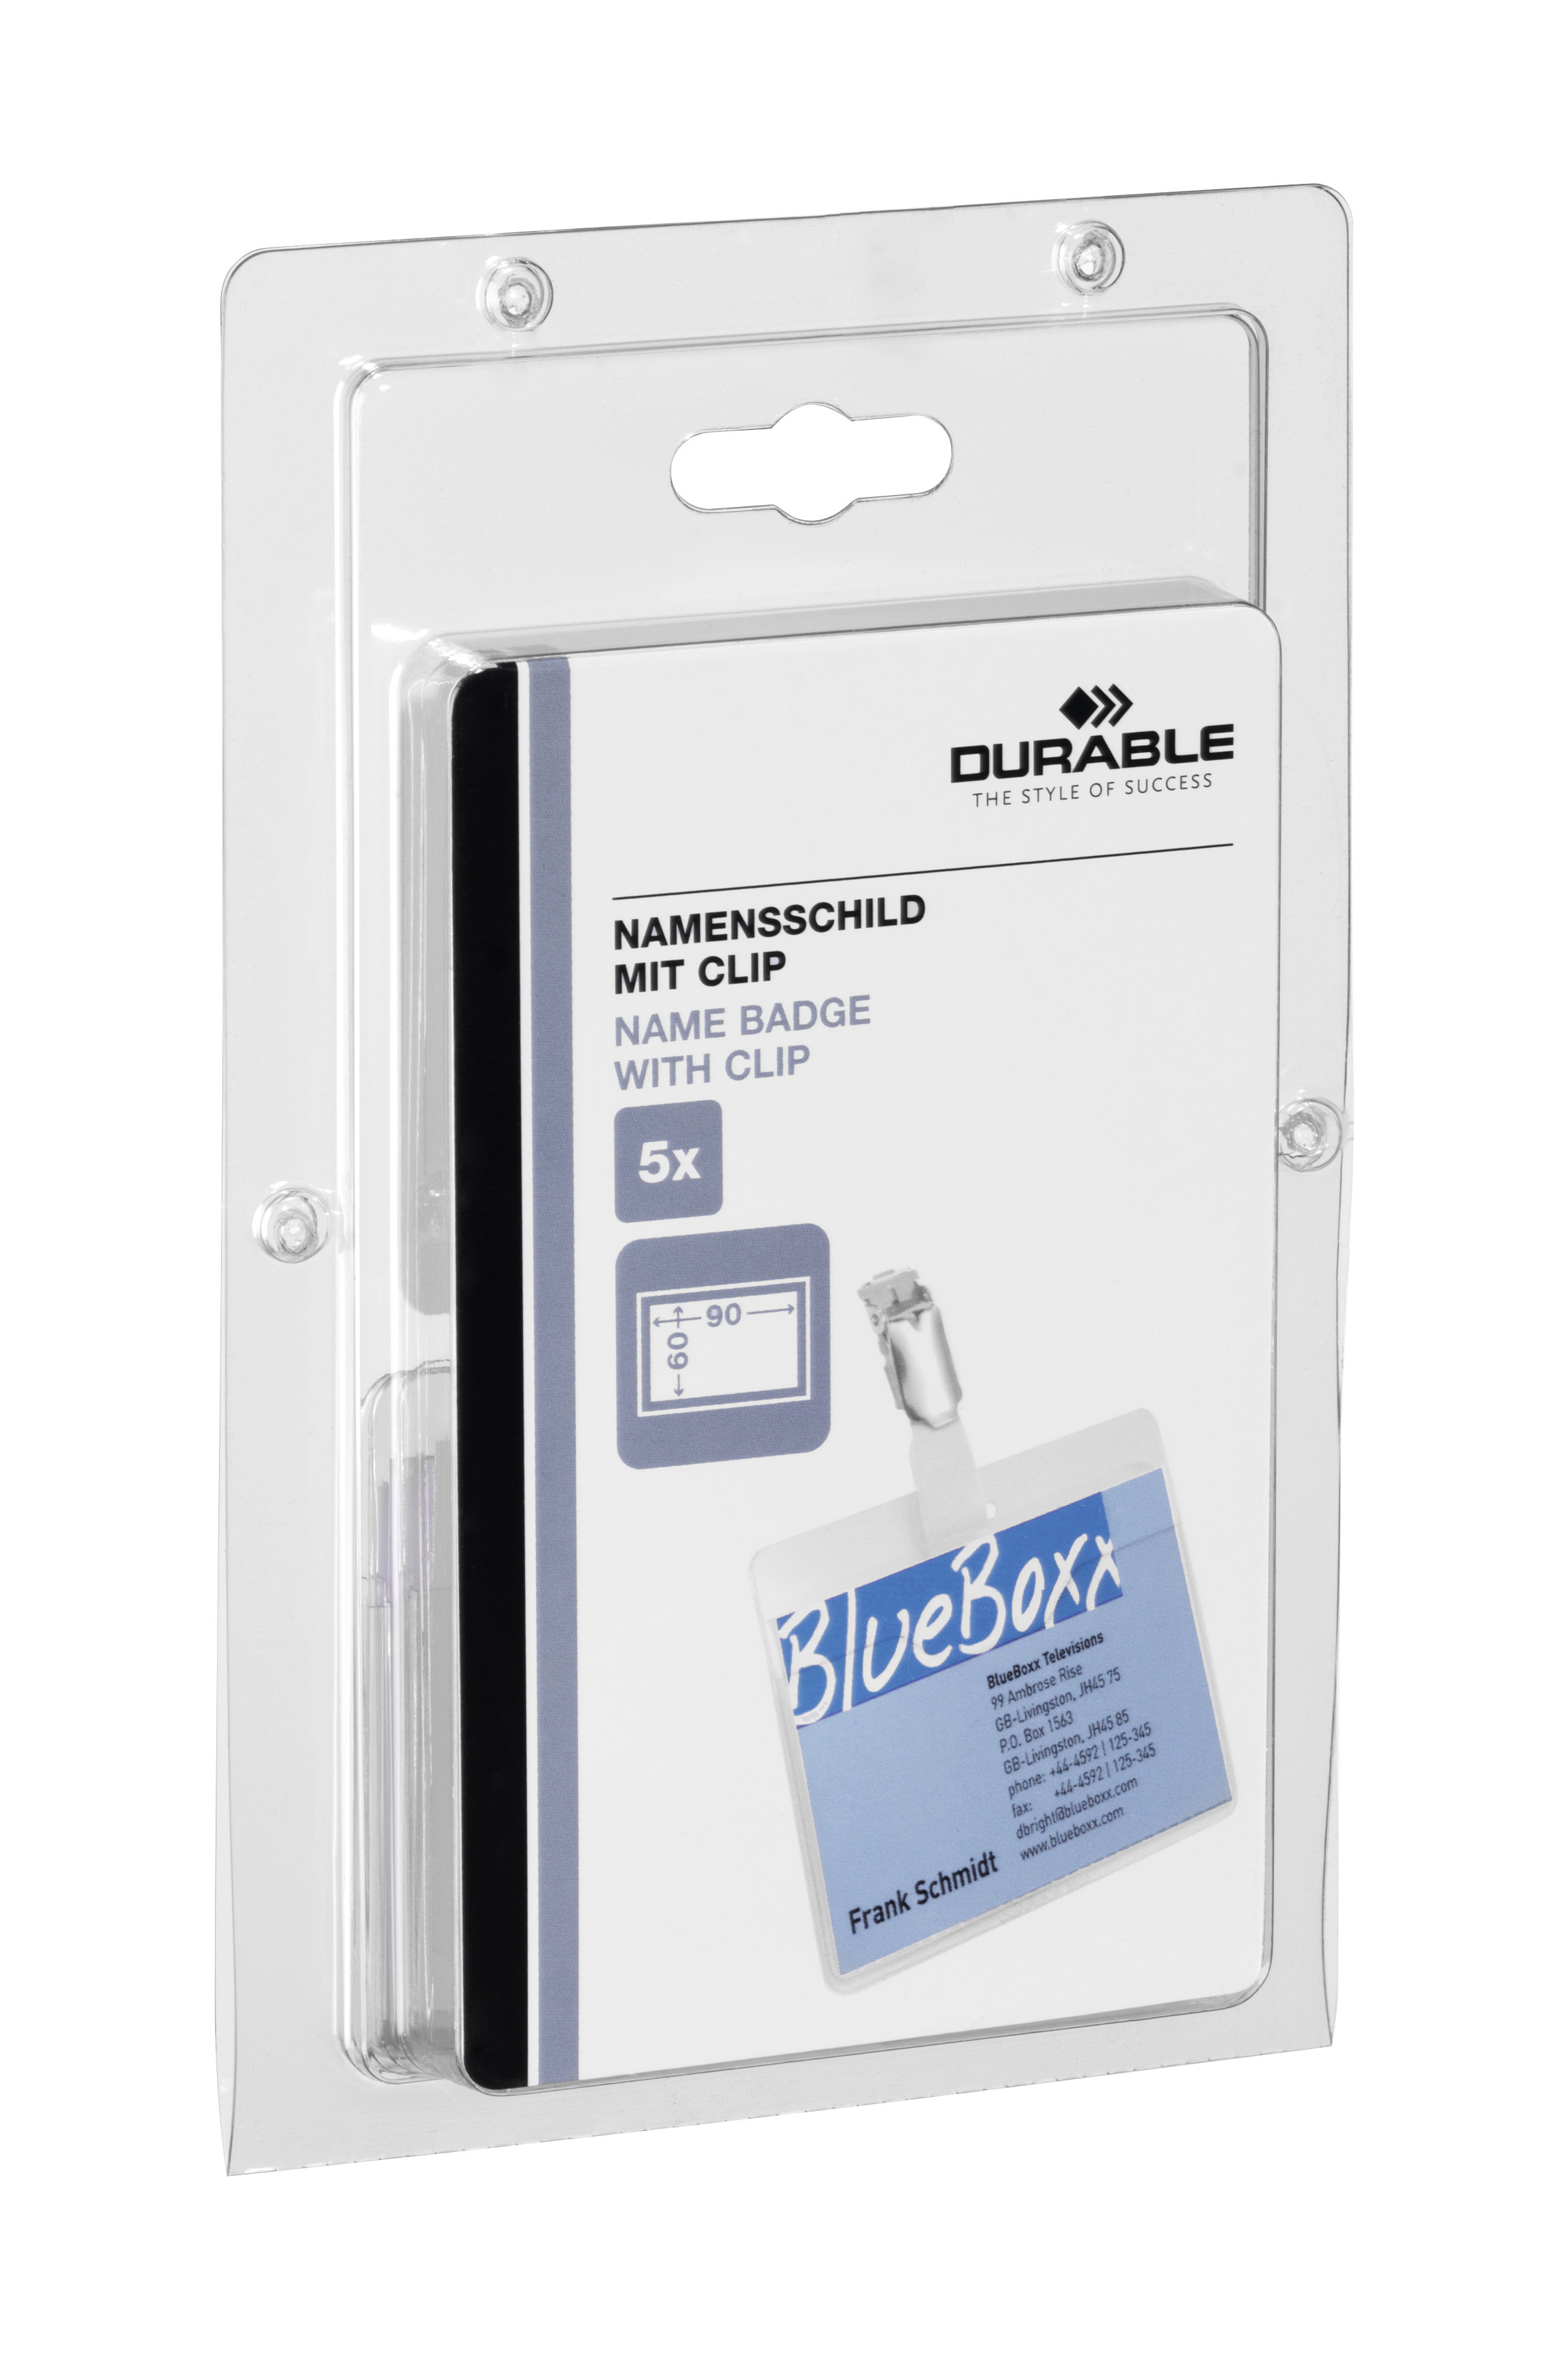 DURABLE NAMENSSCHILD MIT CLIP 1 PAK Z861299